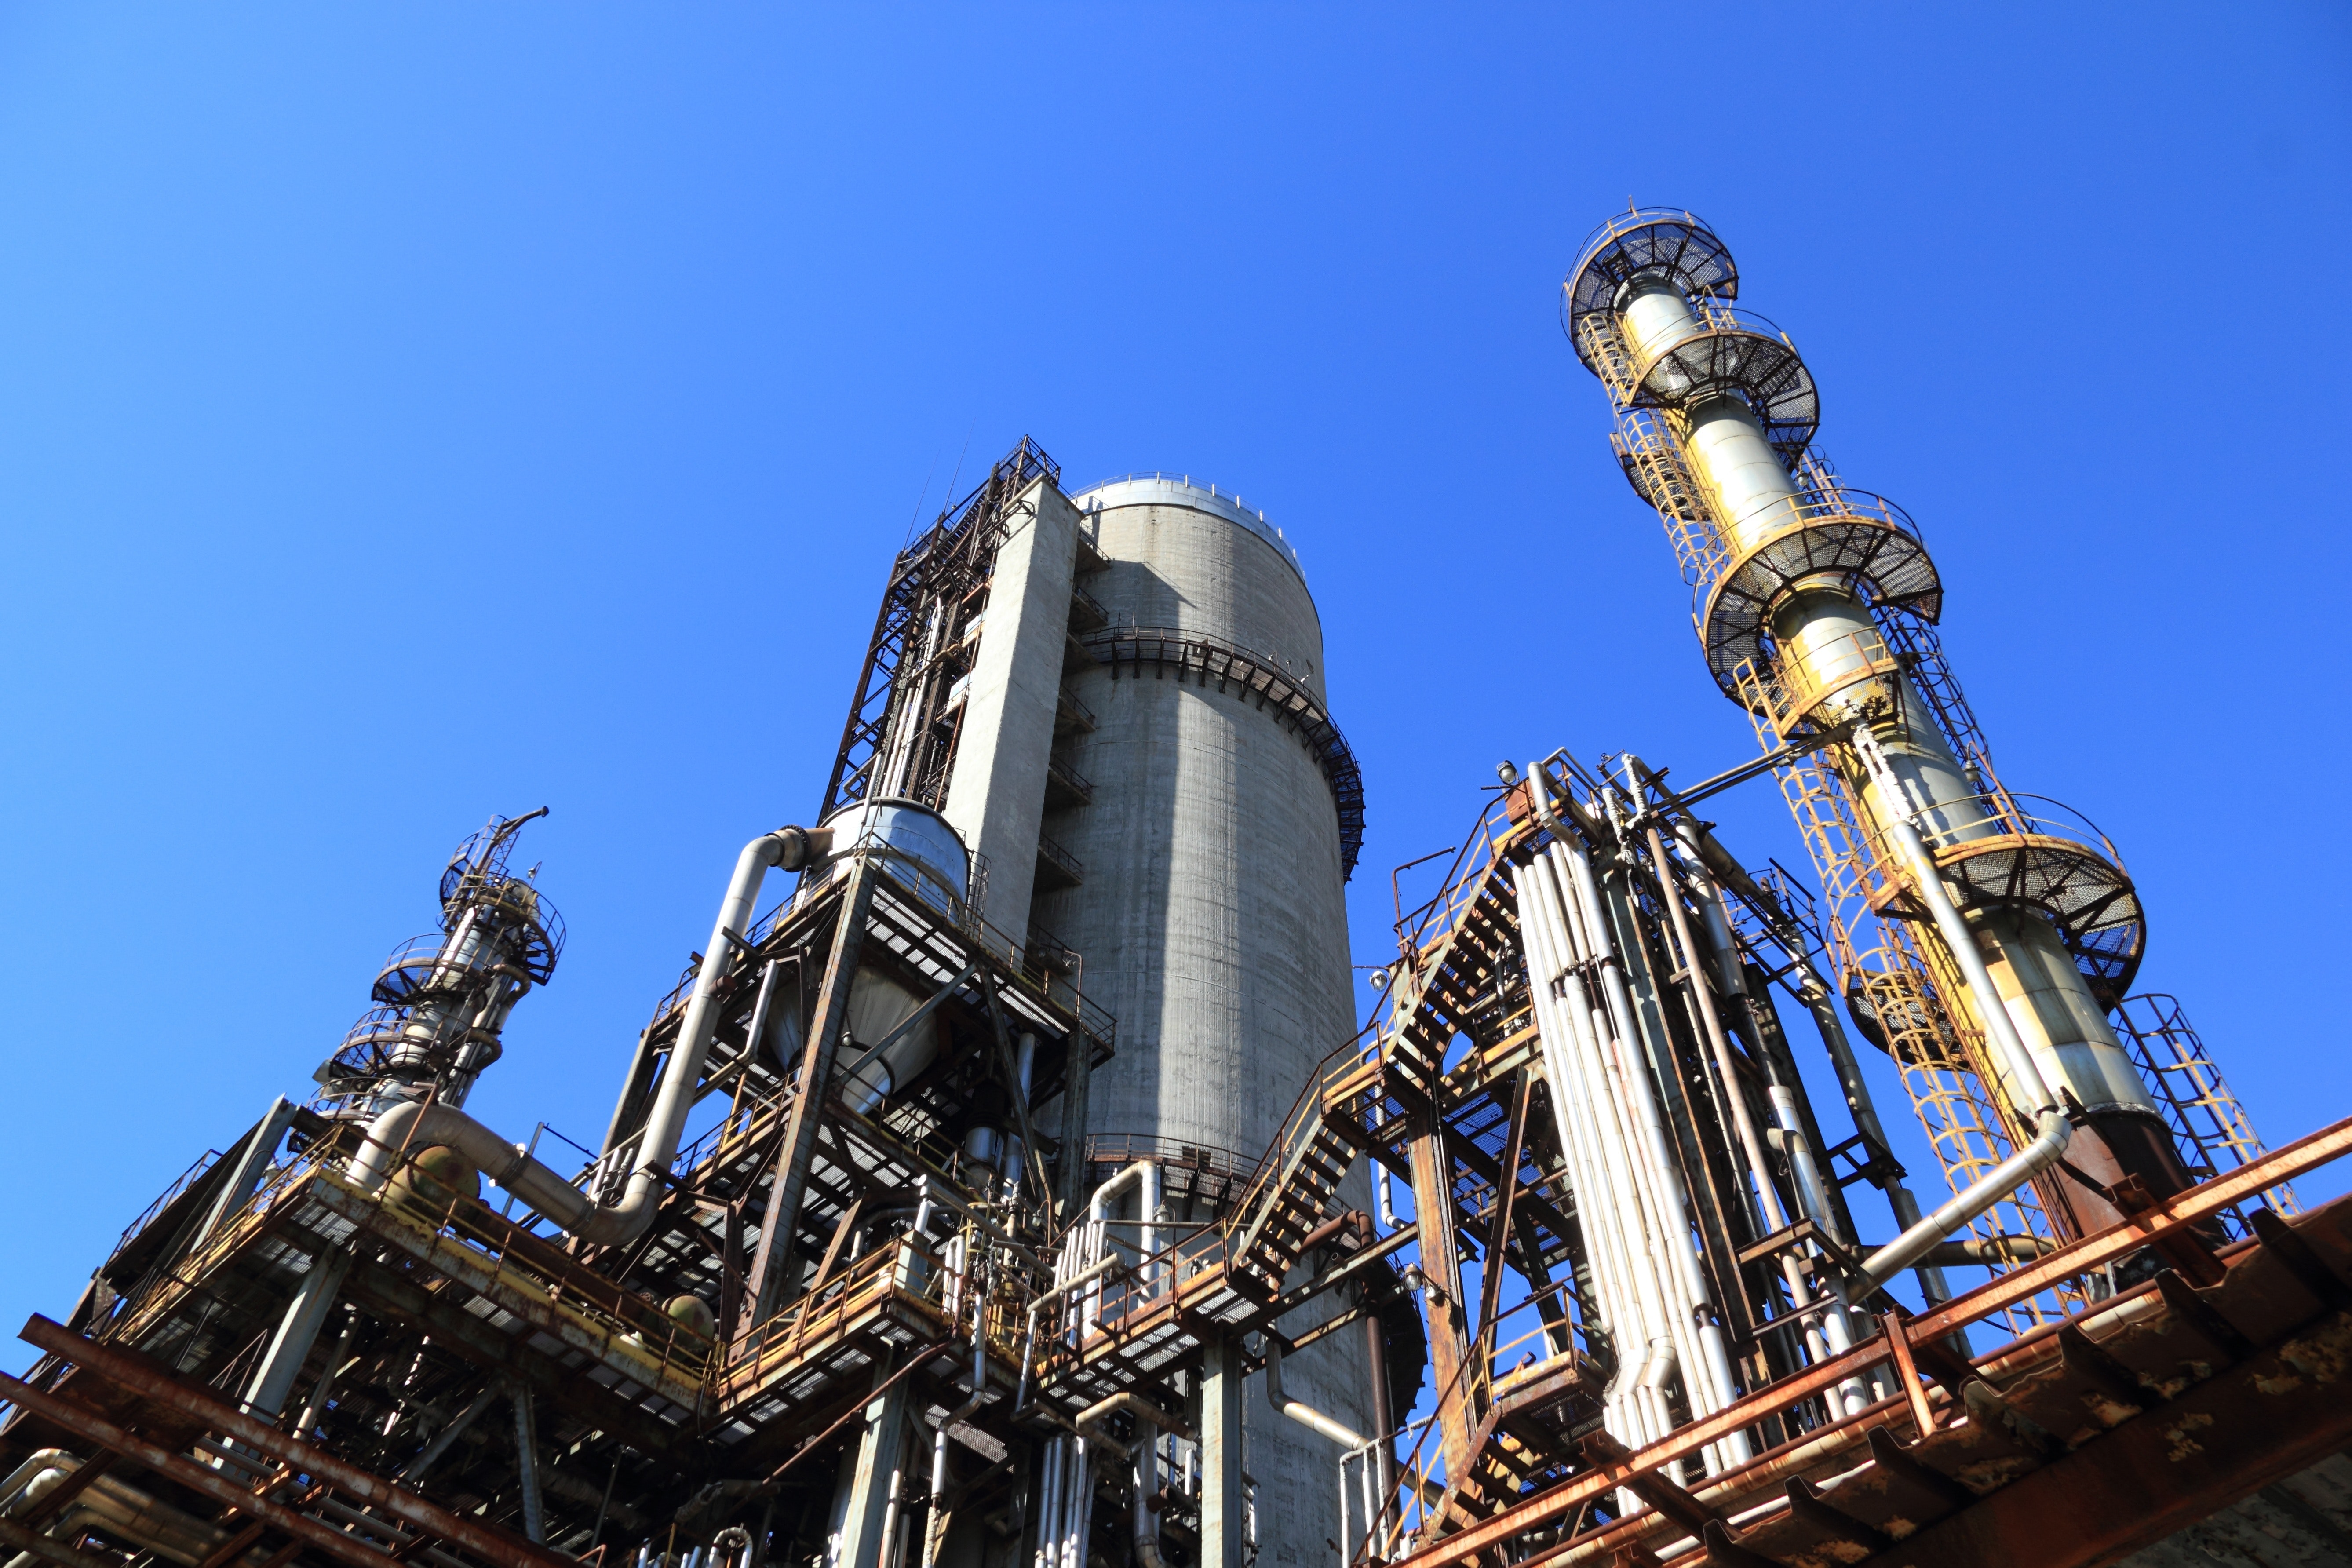 View of Factory Against Blue Sky, Production, Power, Pipe, Rusty, HQ Photo